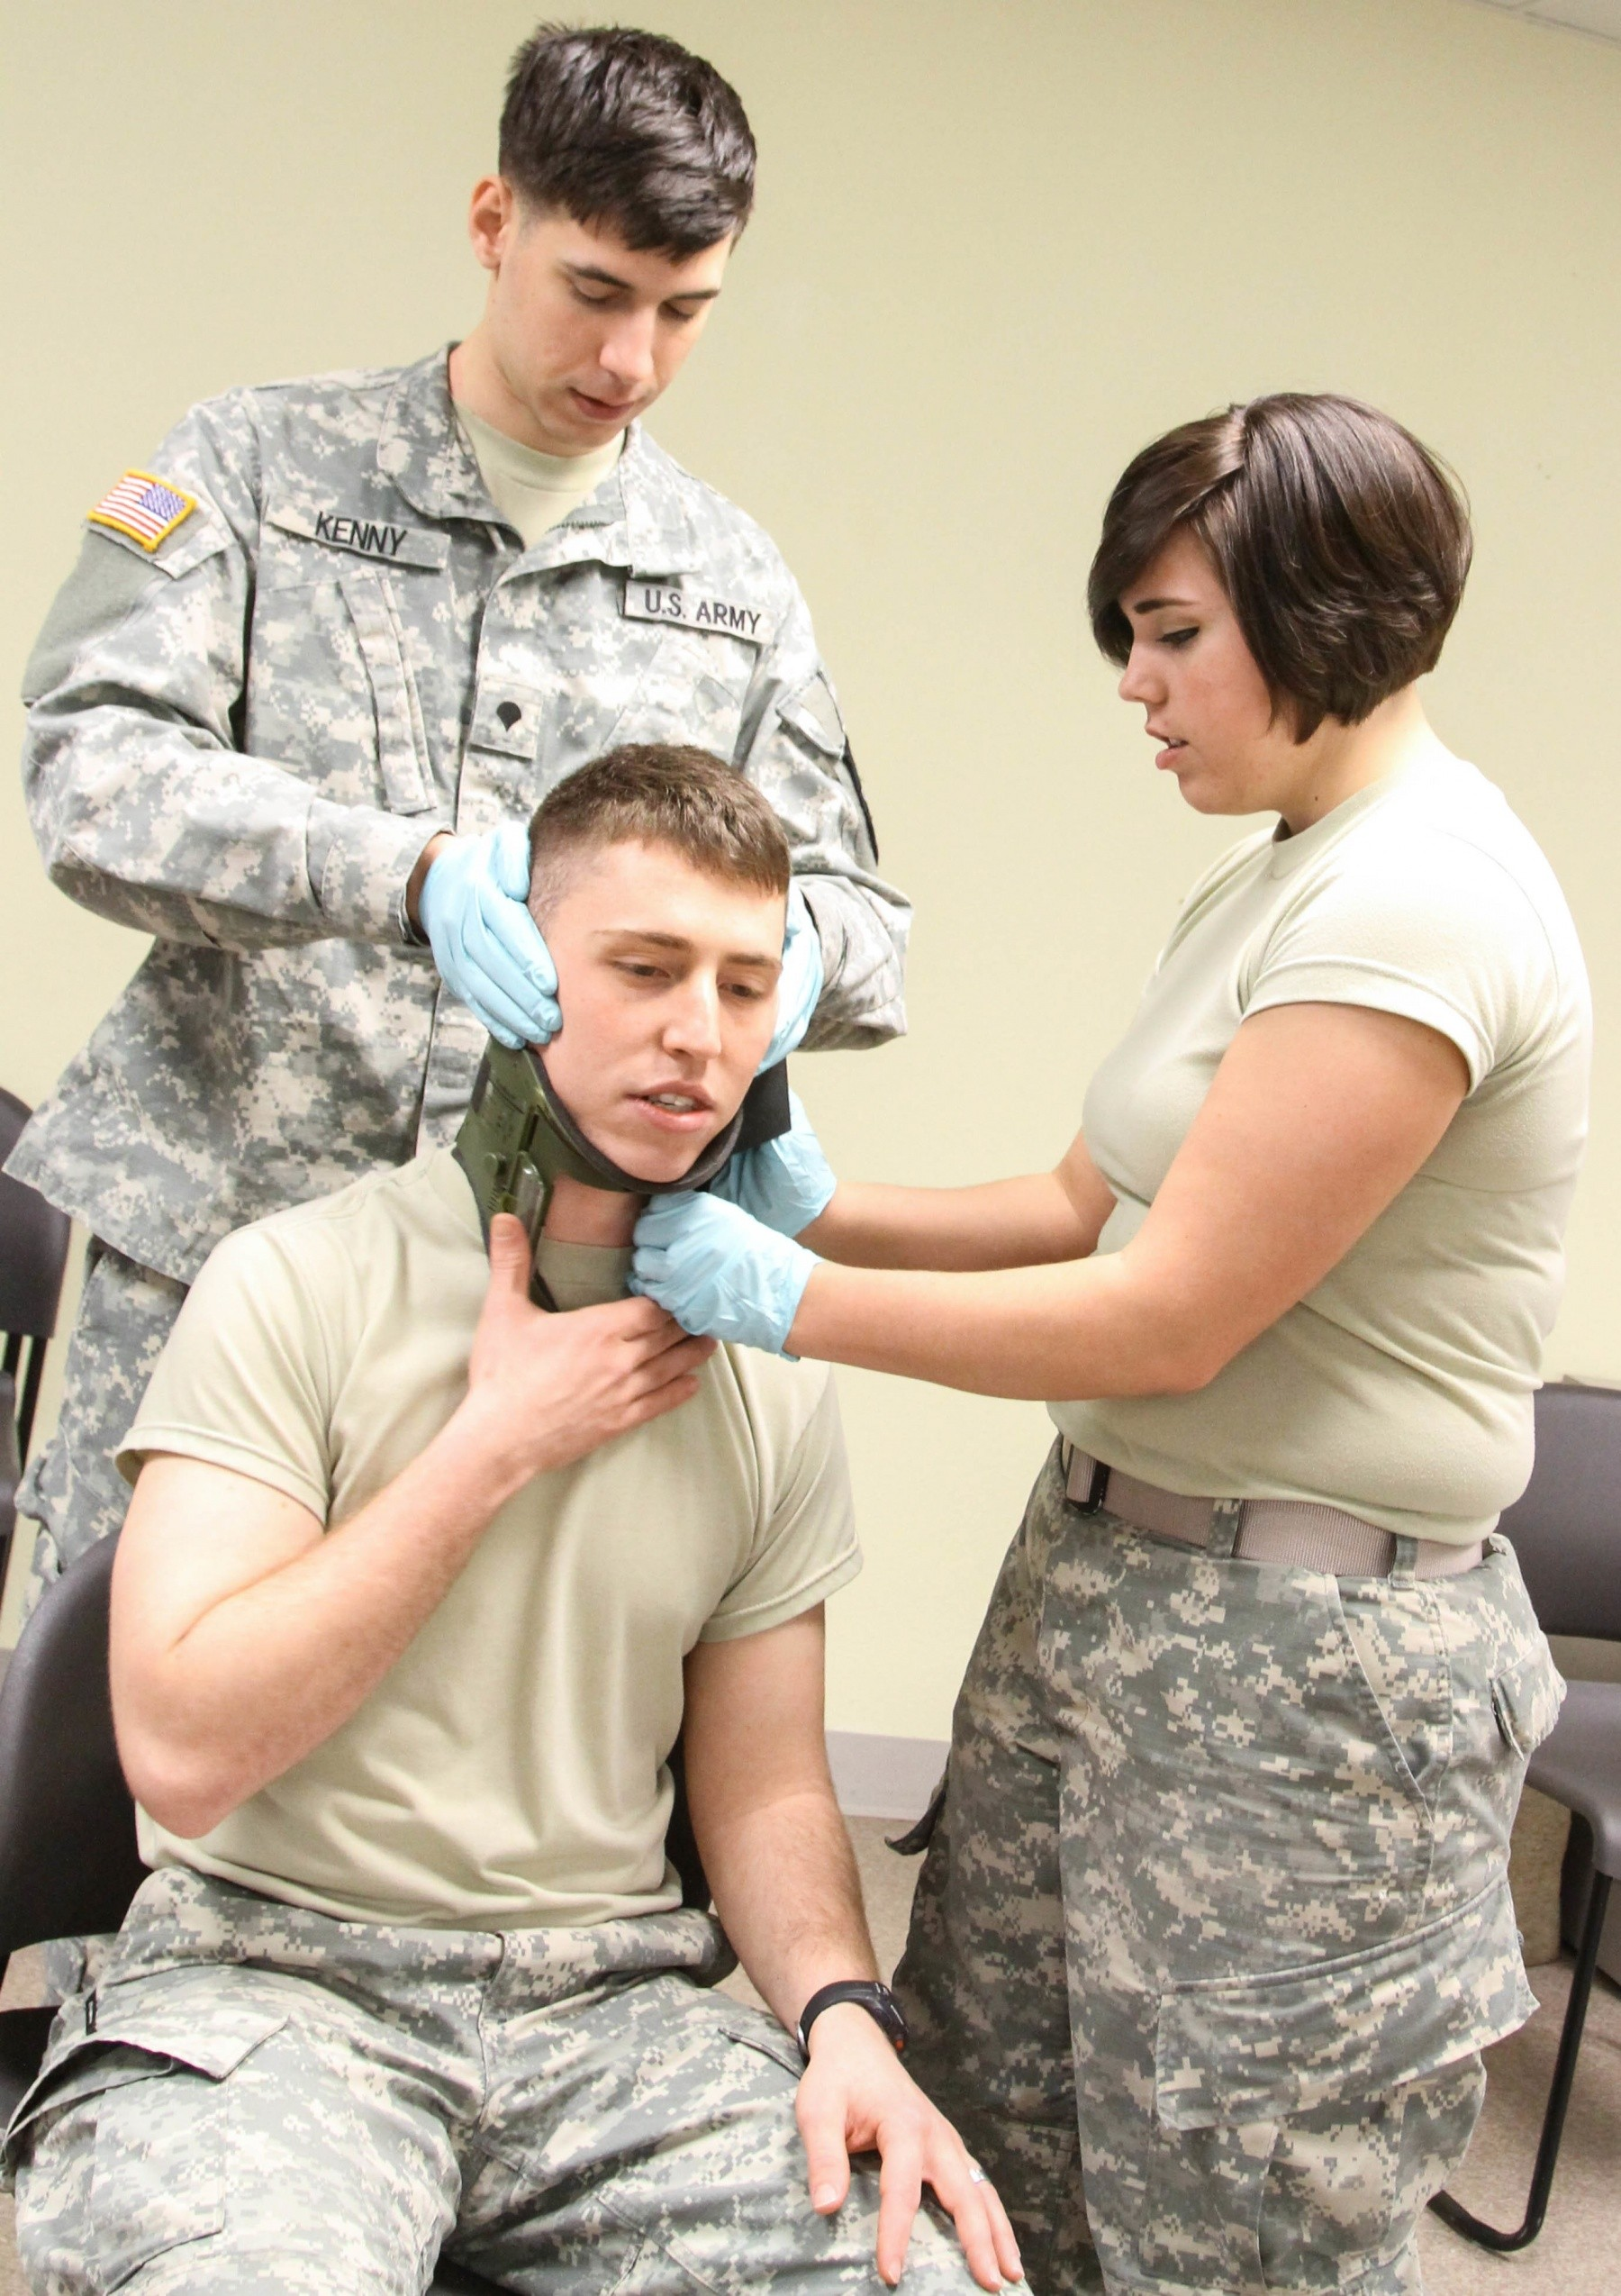 Advanced Medical Training Sets Sol Rs Apart From Their